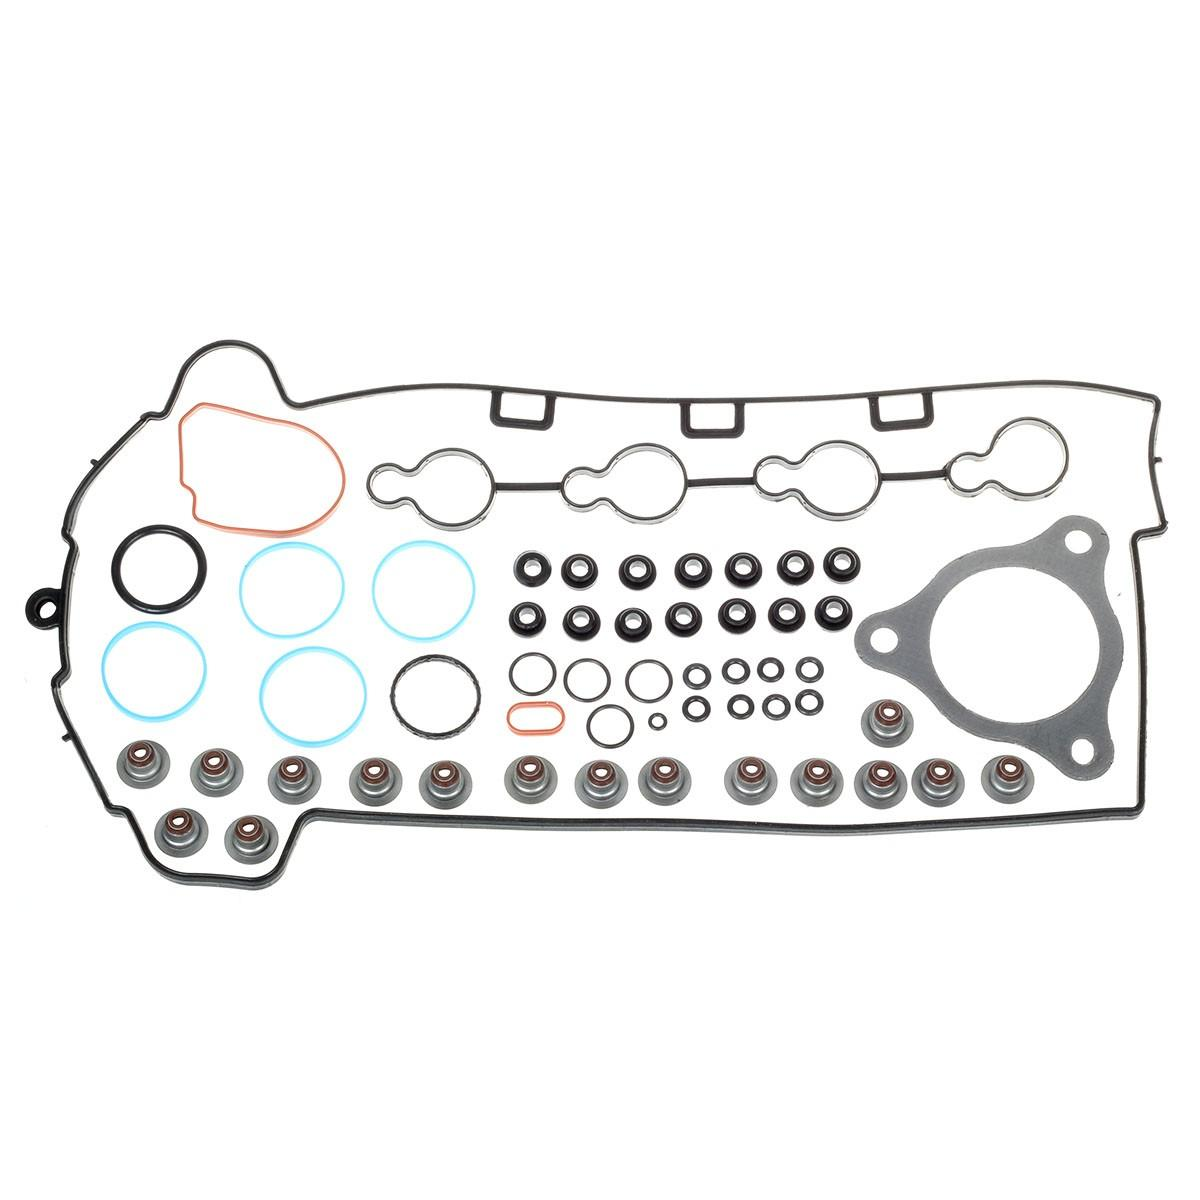 For 07 08 Chevrolet Cobalt Hhr Pontiac 2 2l Cylinder Head